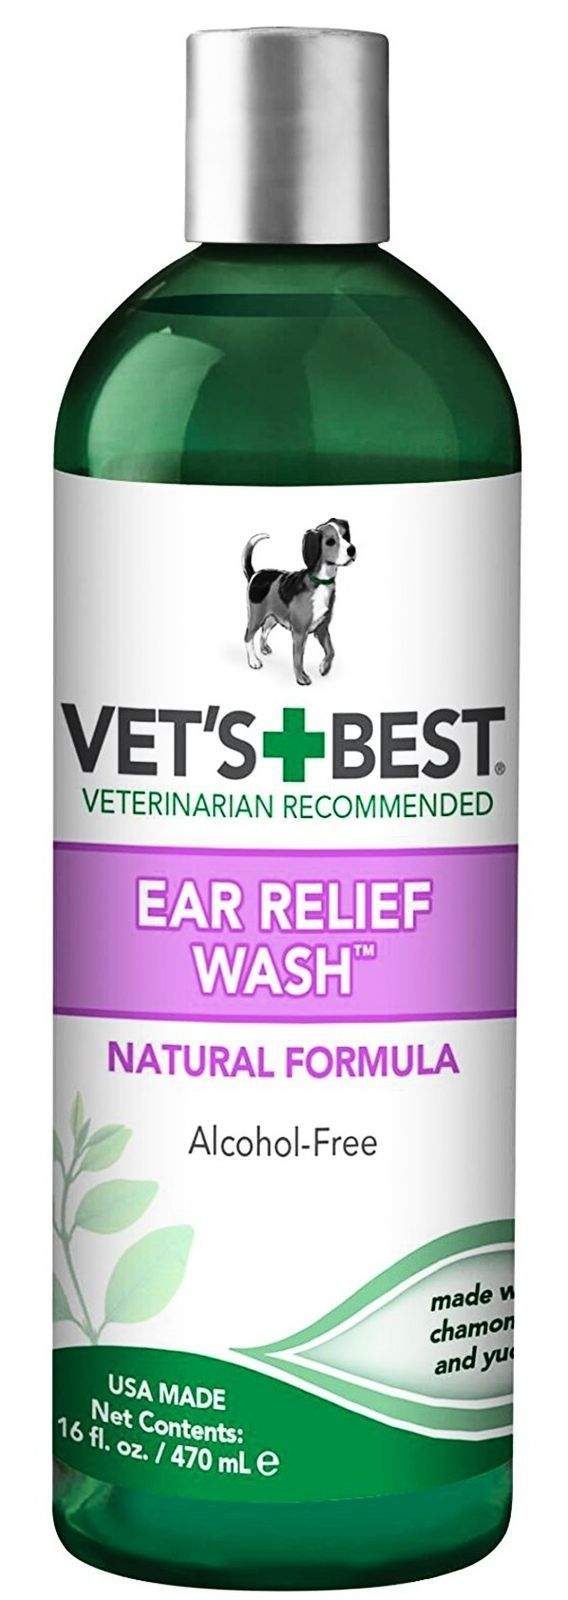 Vets Best Ear Relief Wash Cleaner for Dogs 16 oz Refill